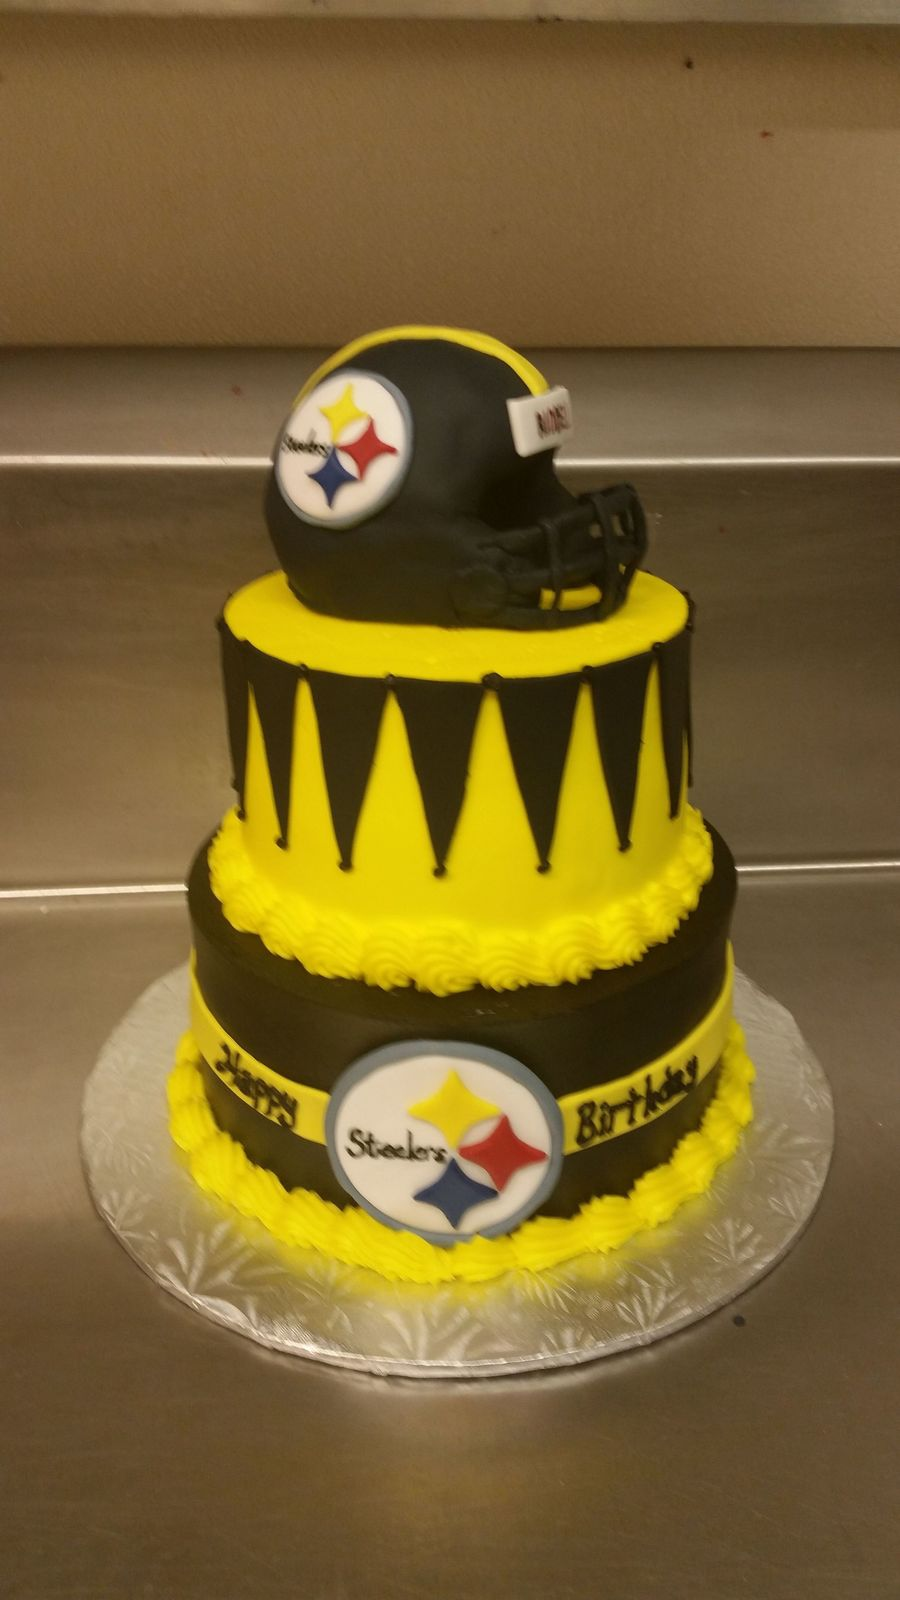 Steelers Birthday Cake Fondant Covered Rice Krispie Helmet The Cake